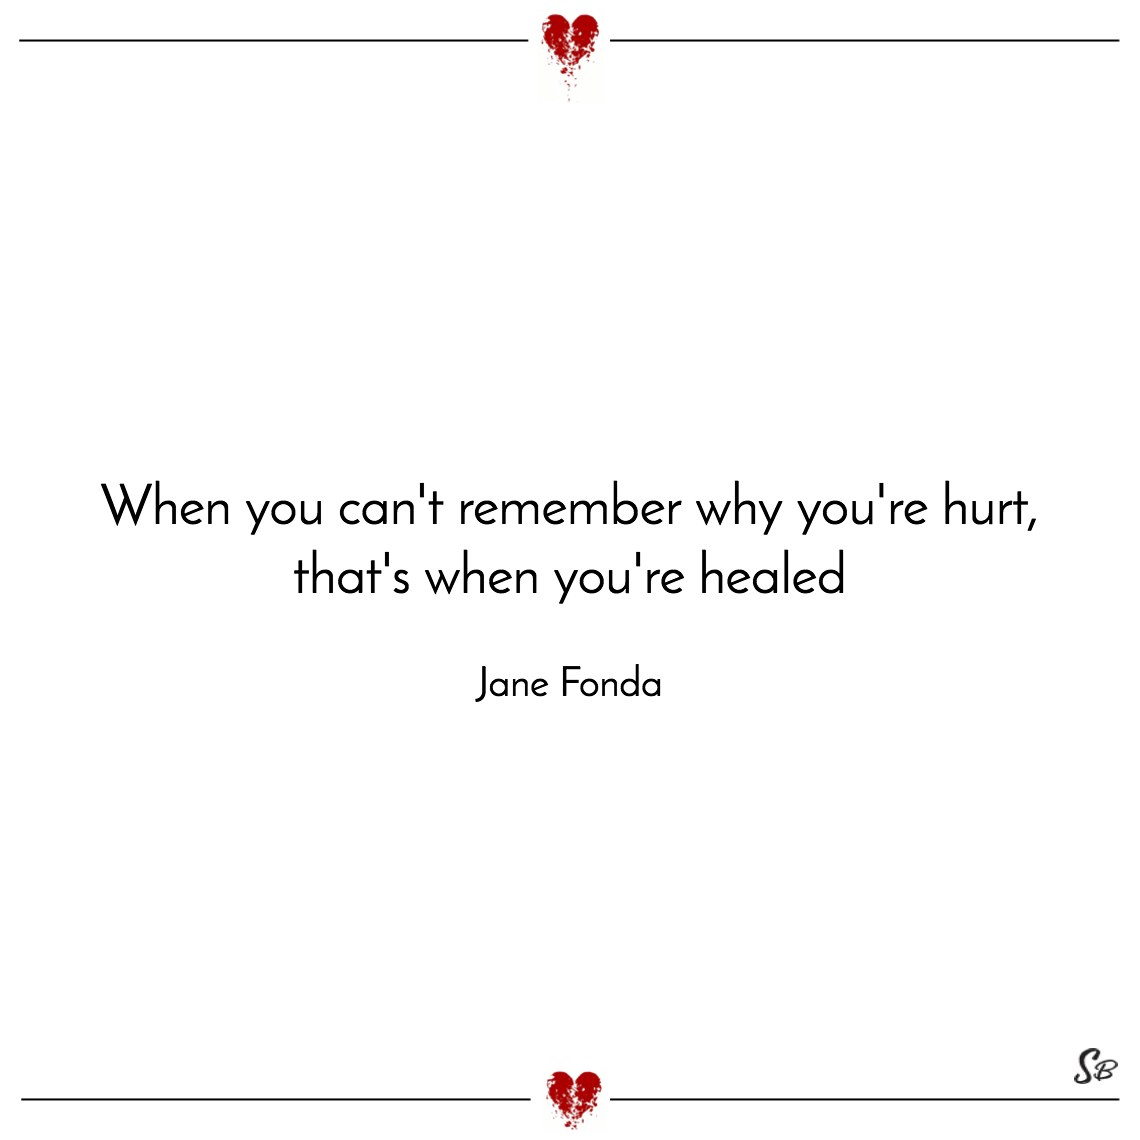 When you can't remember why you're hurt, that's when you're healed jane fonda